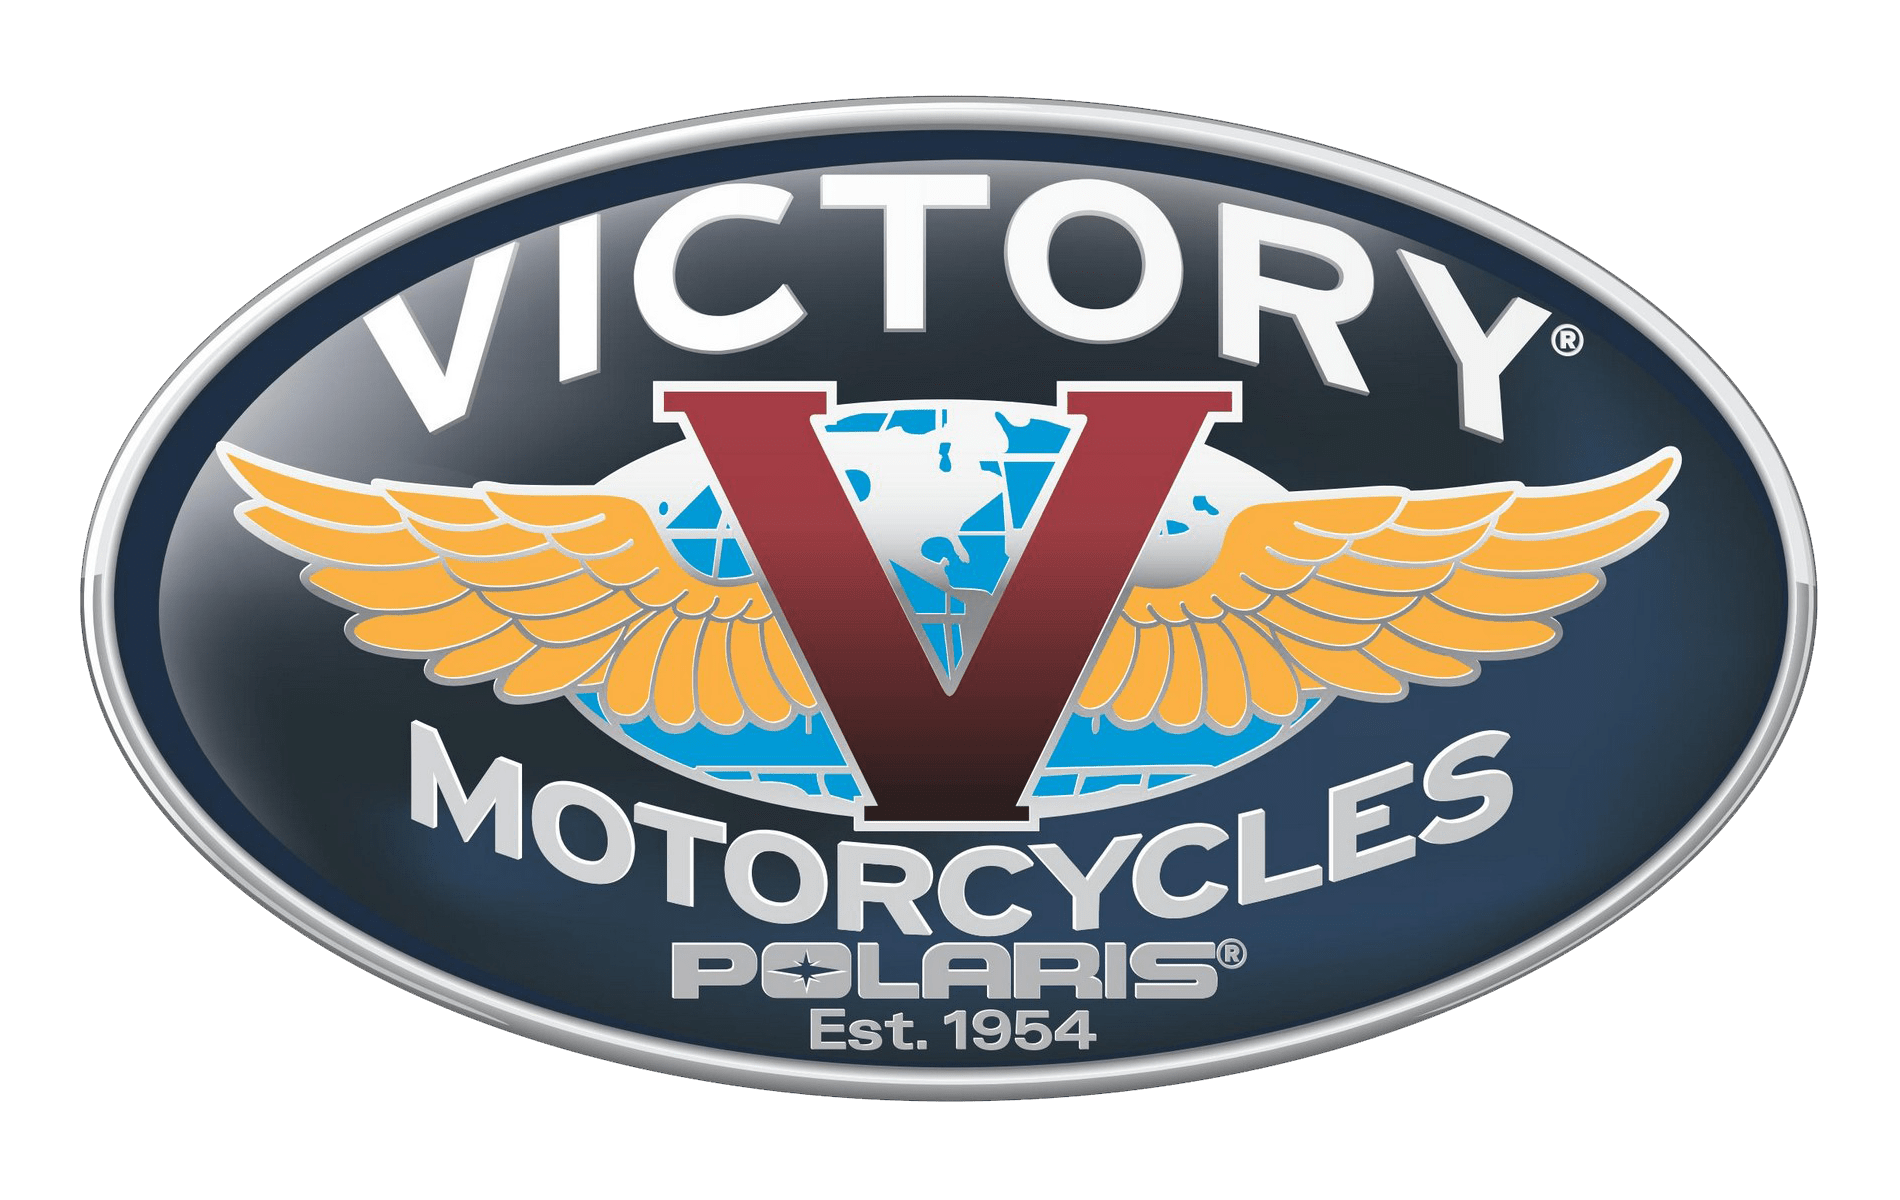 Victory motorcycle logo history and Meaning, bike emblem.